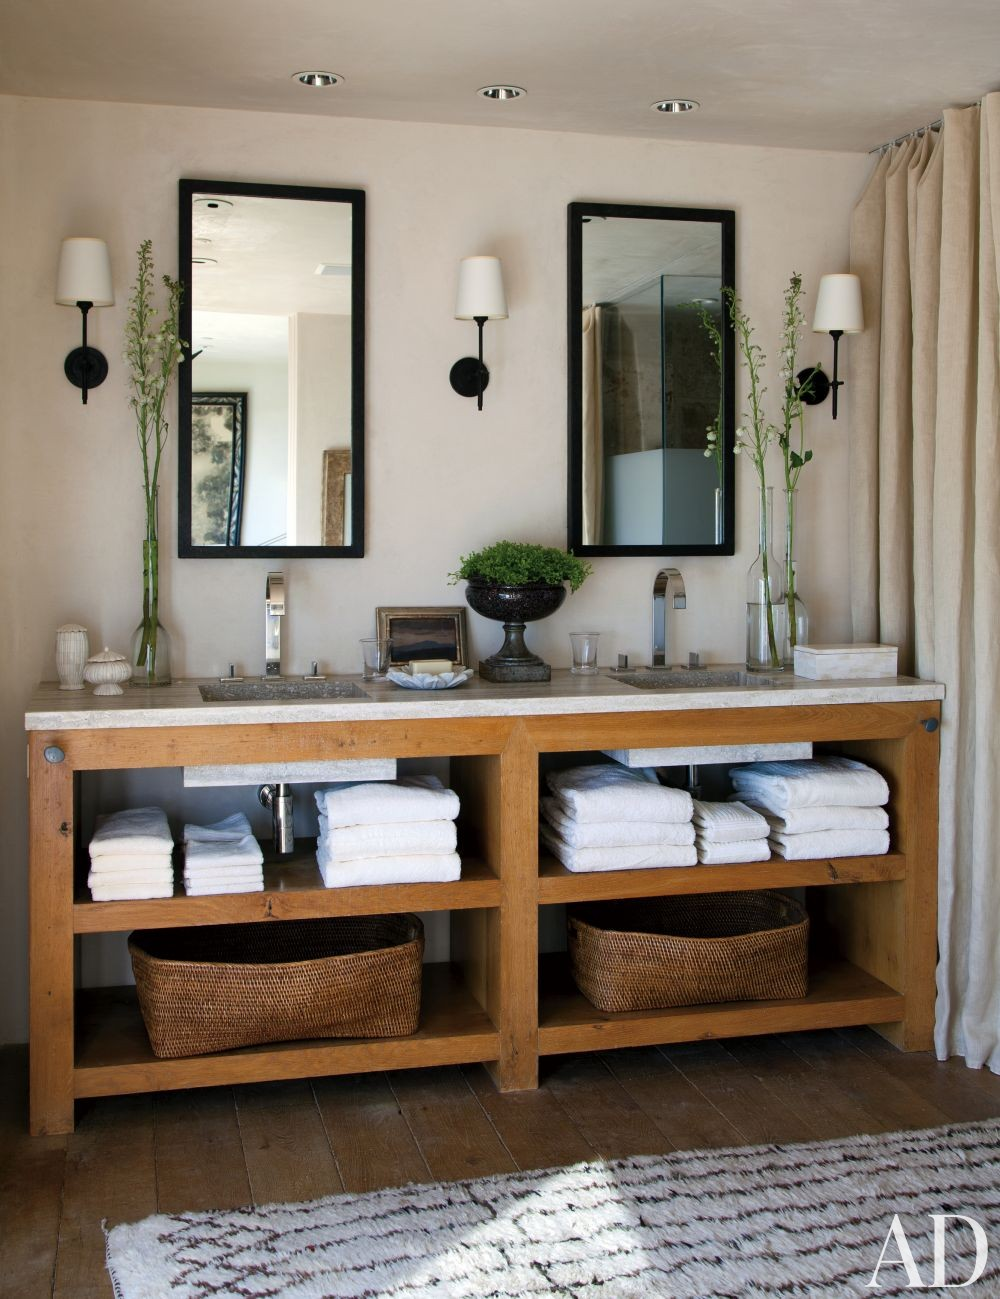 Contemporary Bathroom by Hallberg-Wiseley Designers in Malibu, California